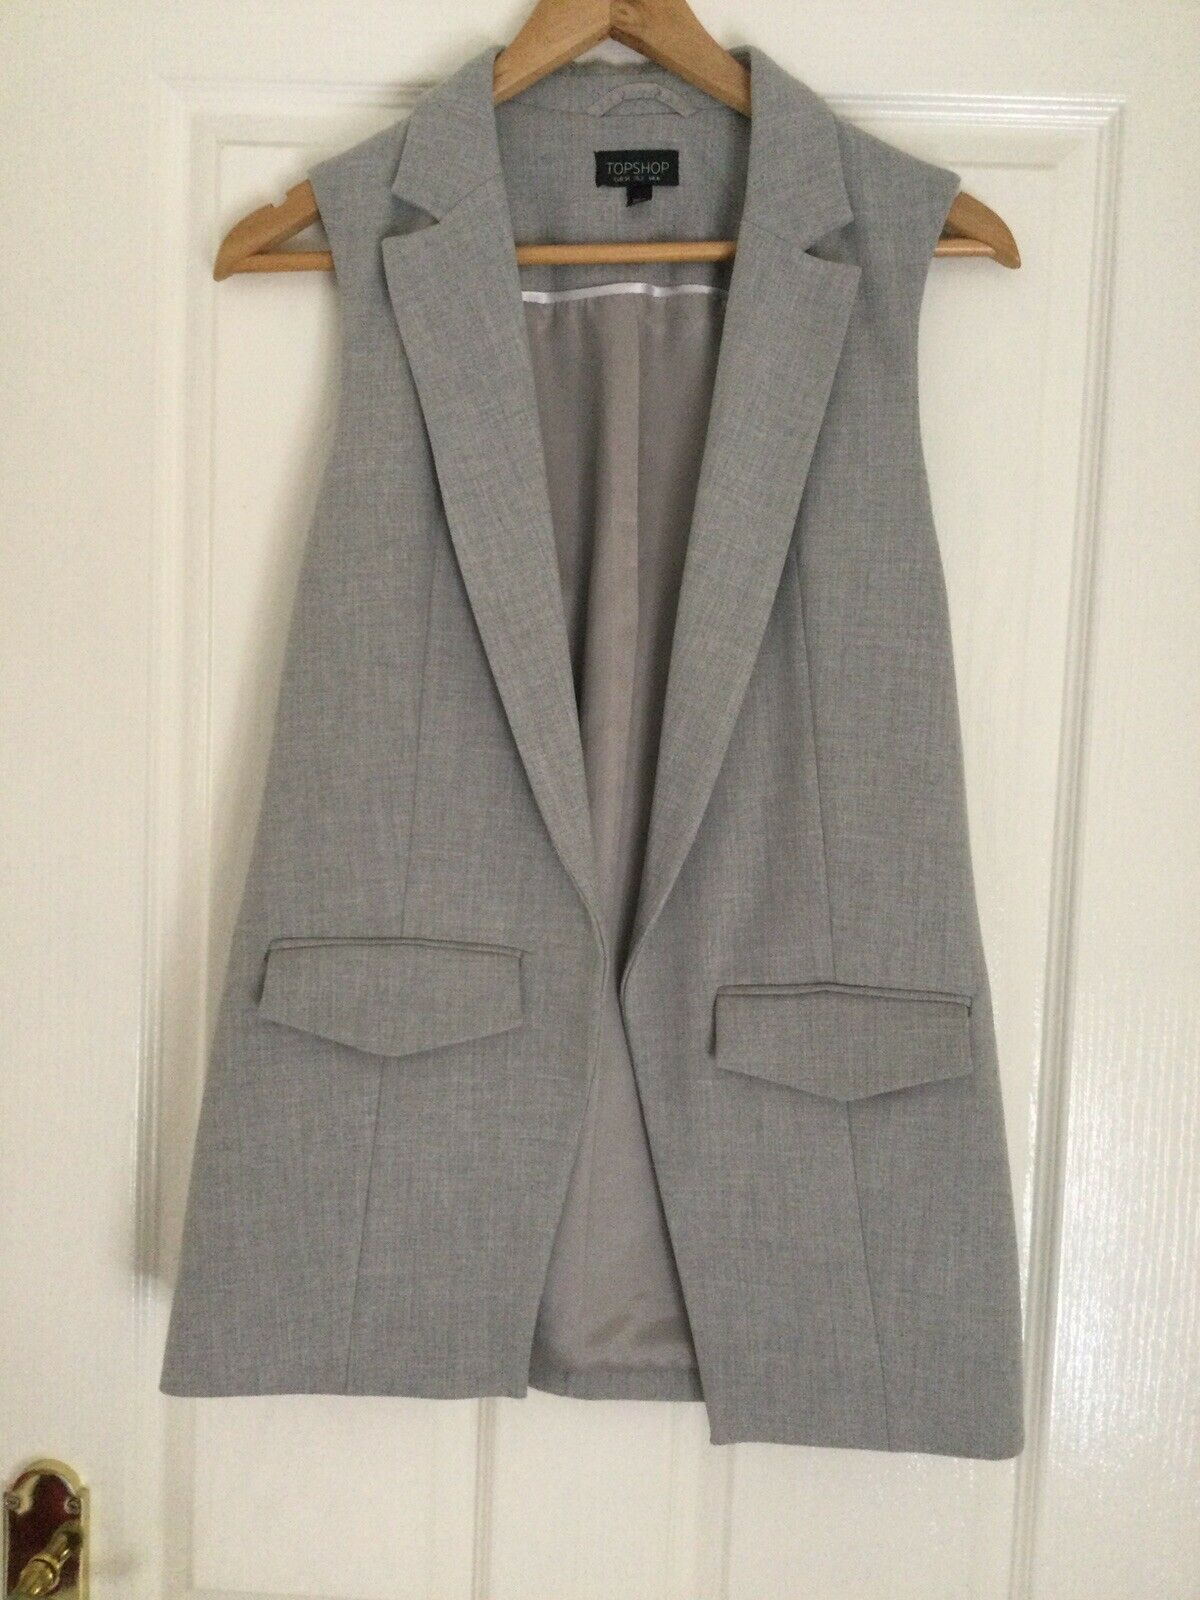 Topshop jacket Size 6 New Without Tags Never Worn